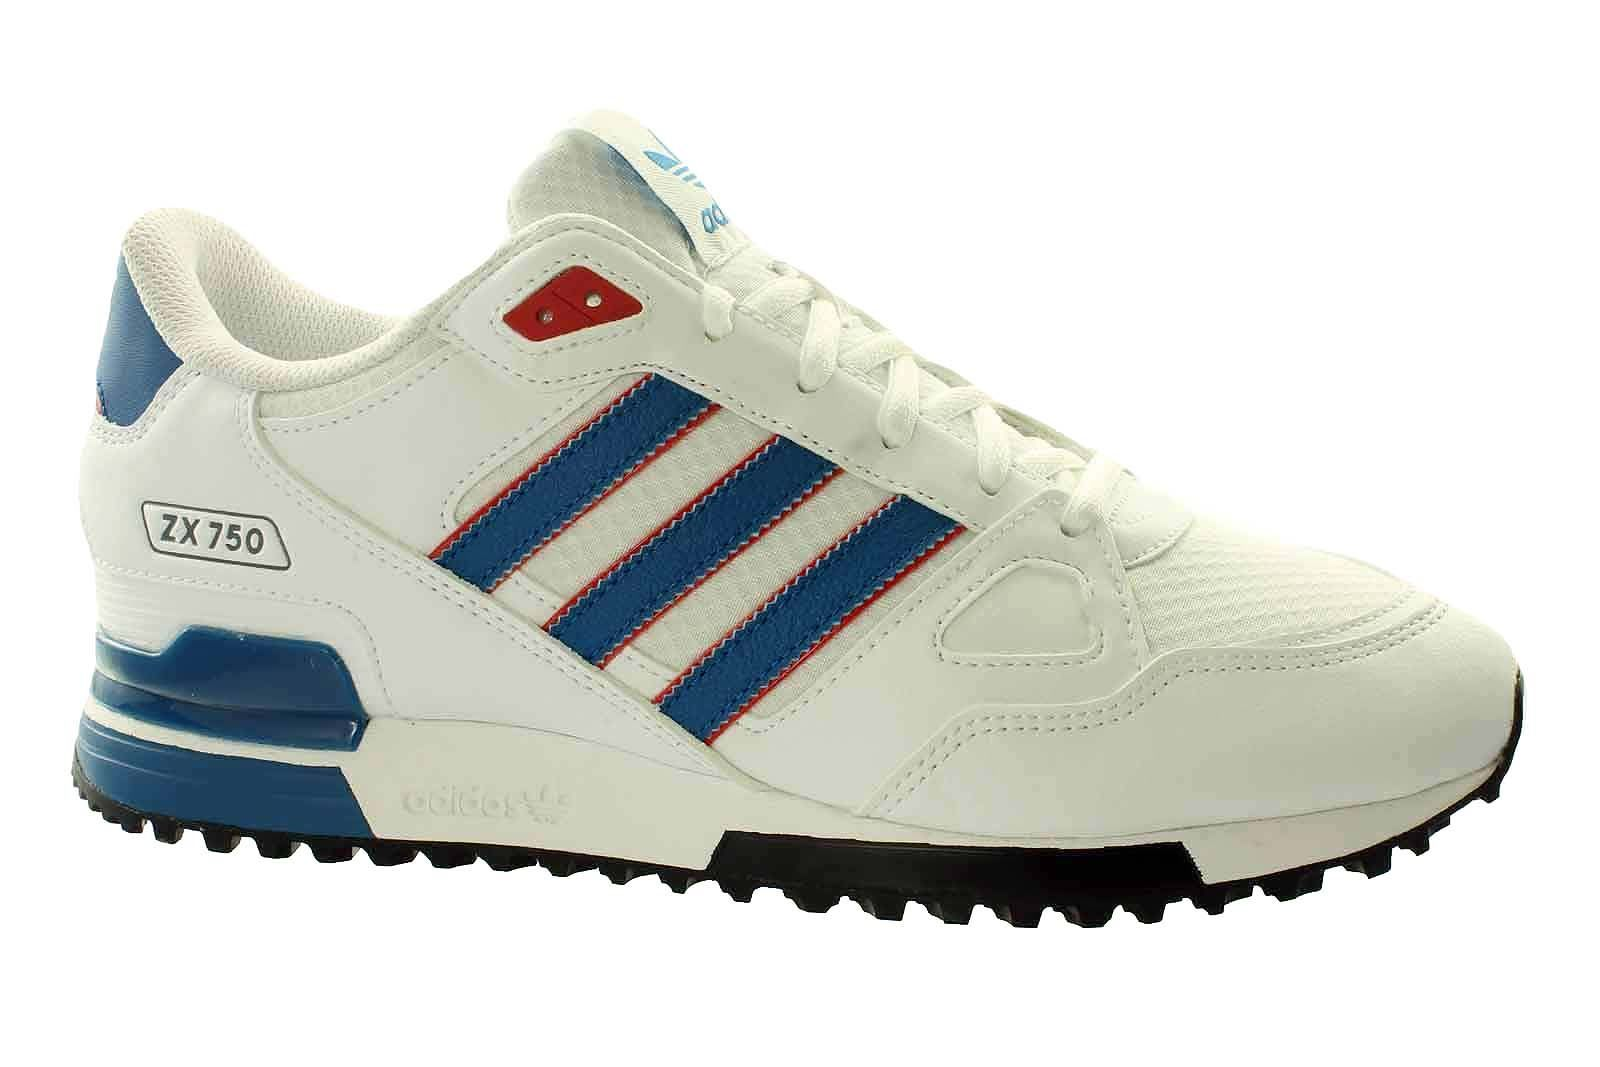 4d82d61fc adidas ZX 750 Mens Trainers~Originals~UK 3.5 - 11.5 Only in 2019 ...